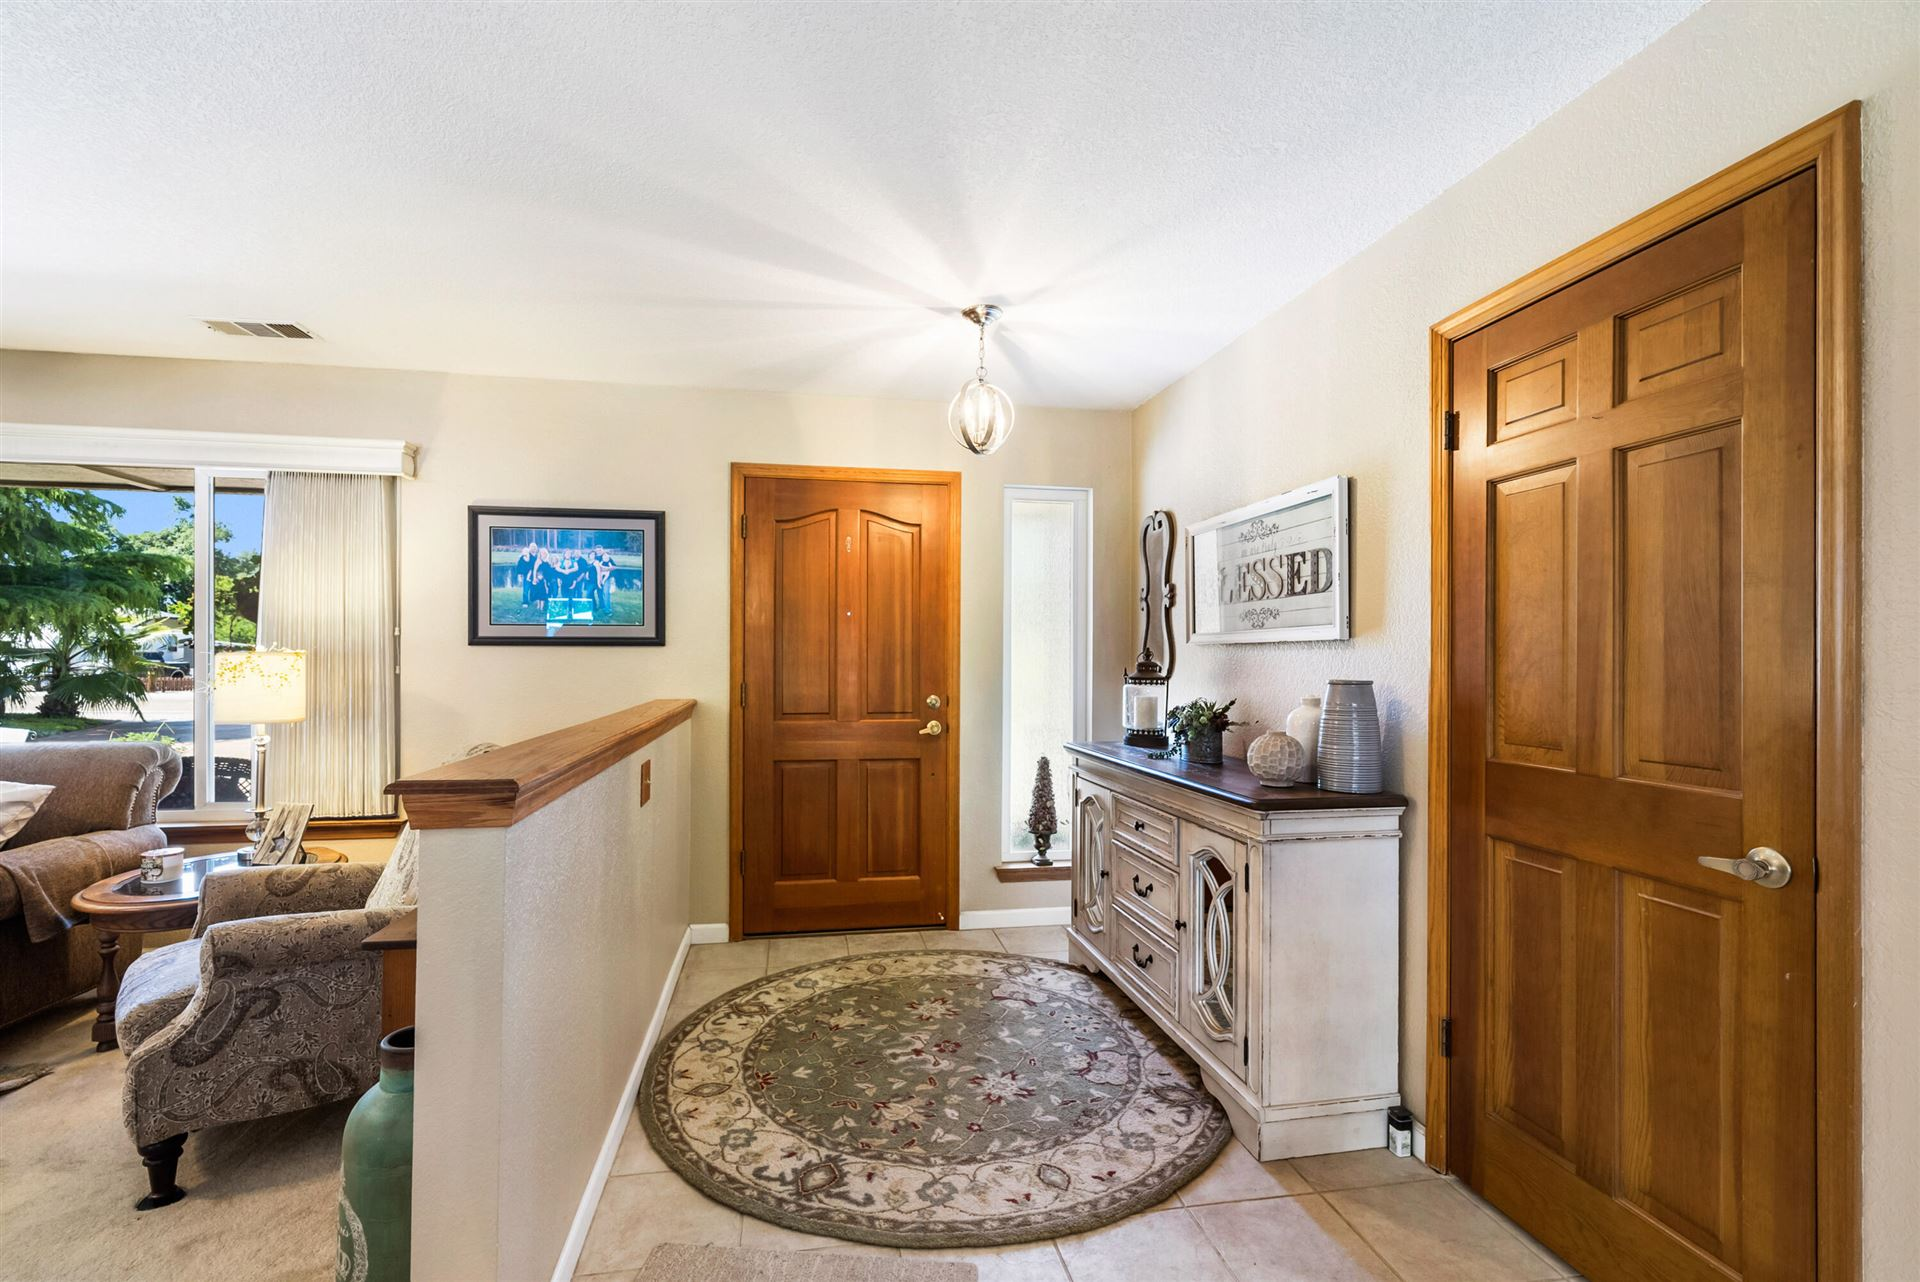 Photo of 20149 Meadow View Dr, Redding, CA 96002 (MLS # 21-4814)